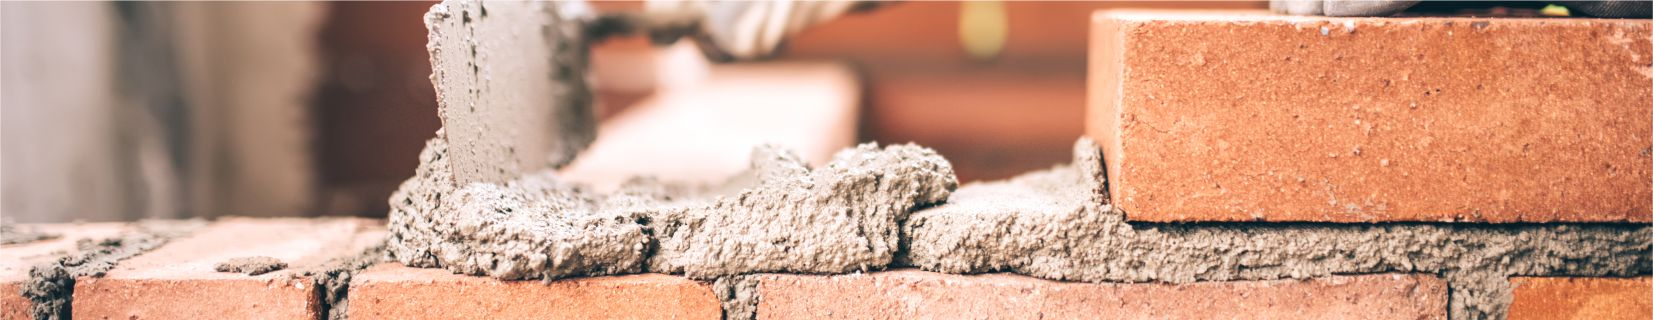 Builder Building a Brick Wall